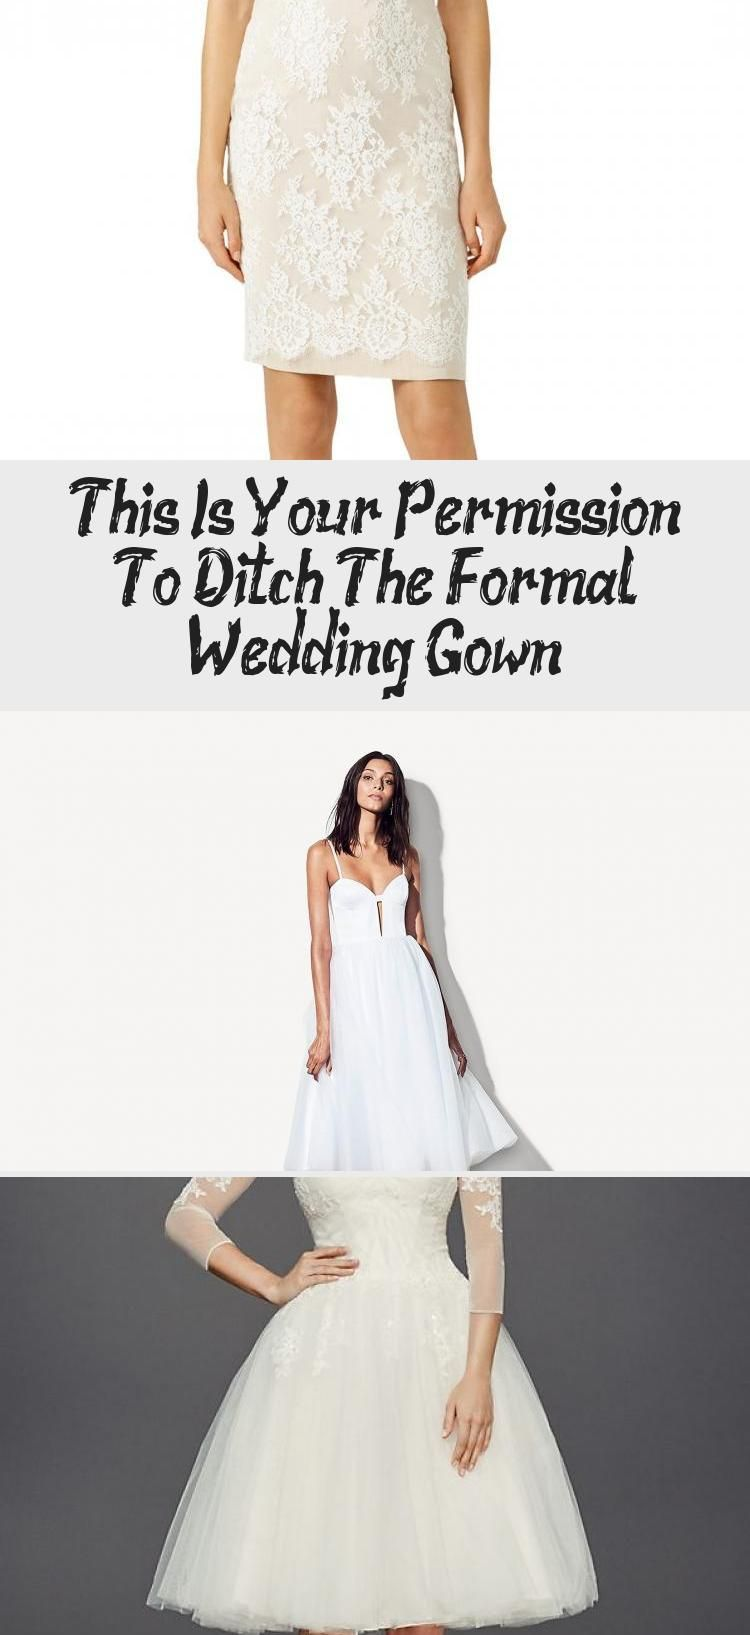 This Is Your Permission To Ditch The Formal Wedding Gown Clothing Dress Formal Wedding Gown Modern Short Wedding Dress Online Wedding Dress [ jpg ]